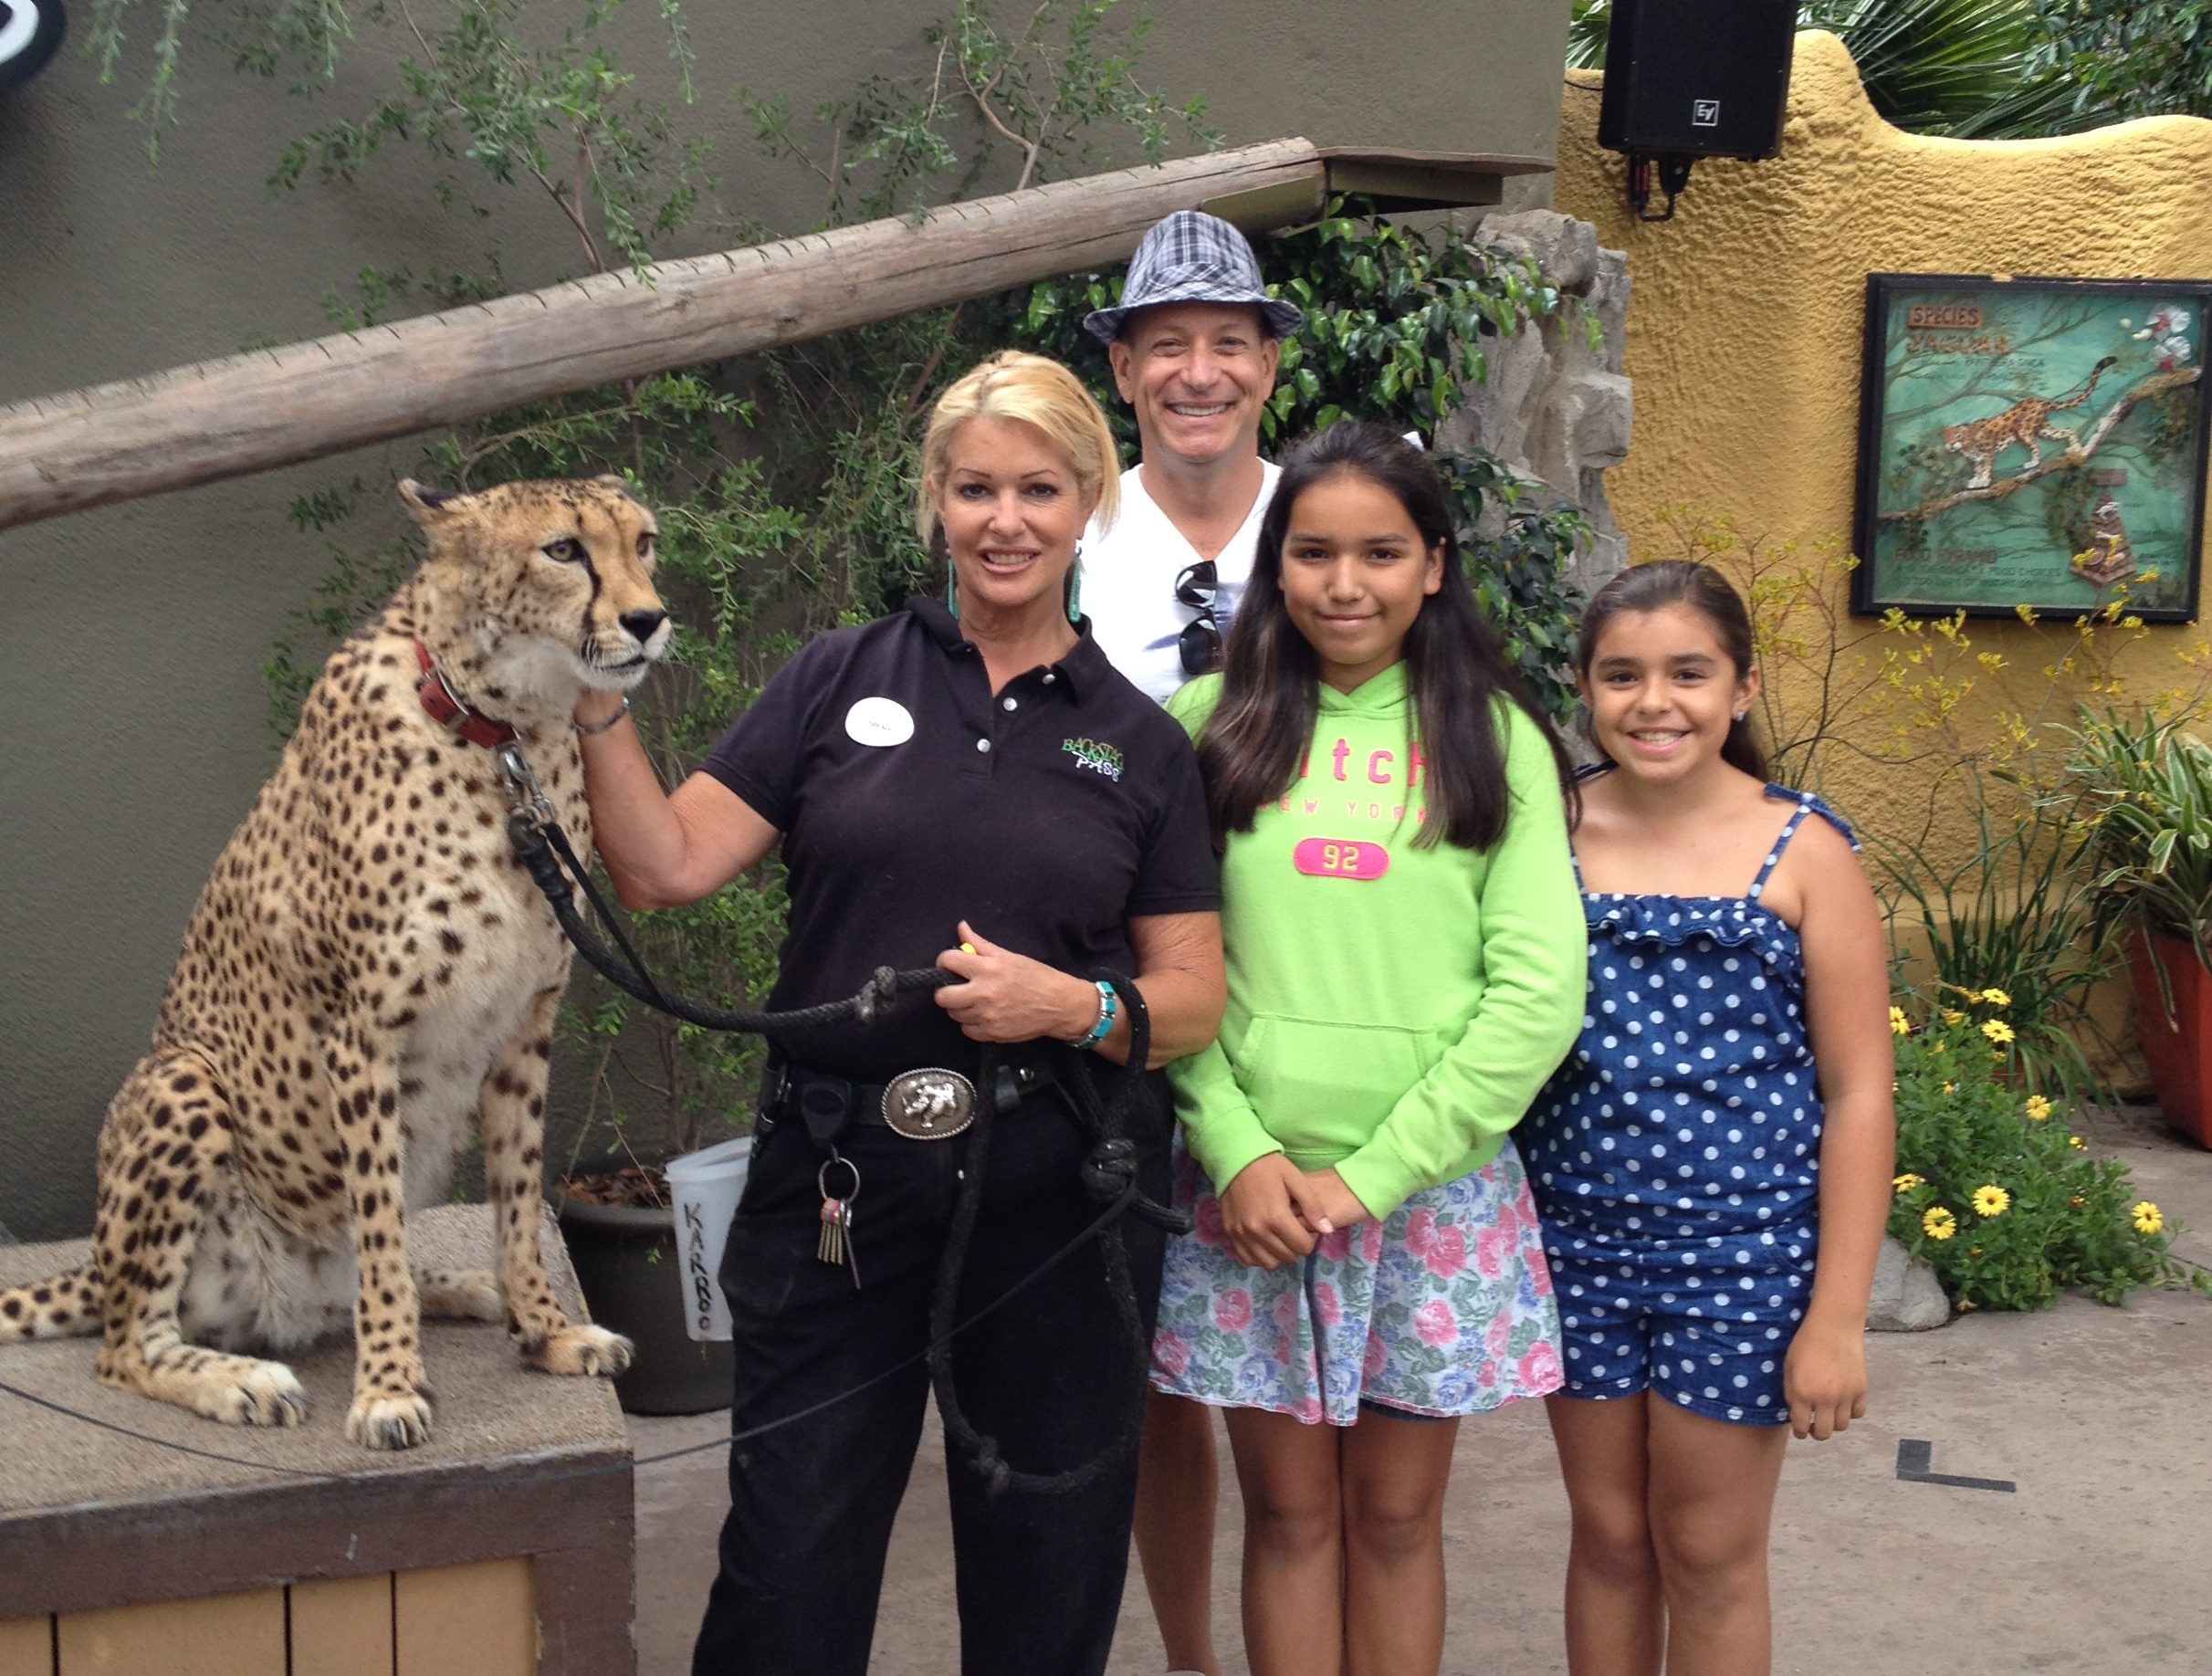 We had a blast behind the scenes at the world-famous San Diego Zoo